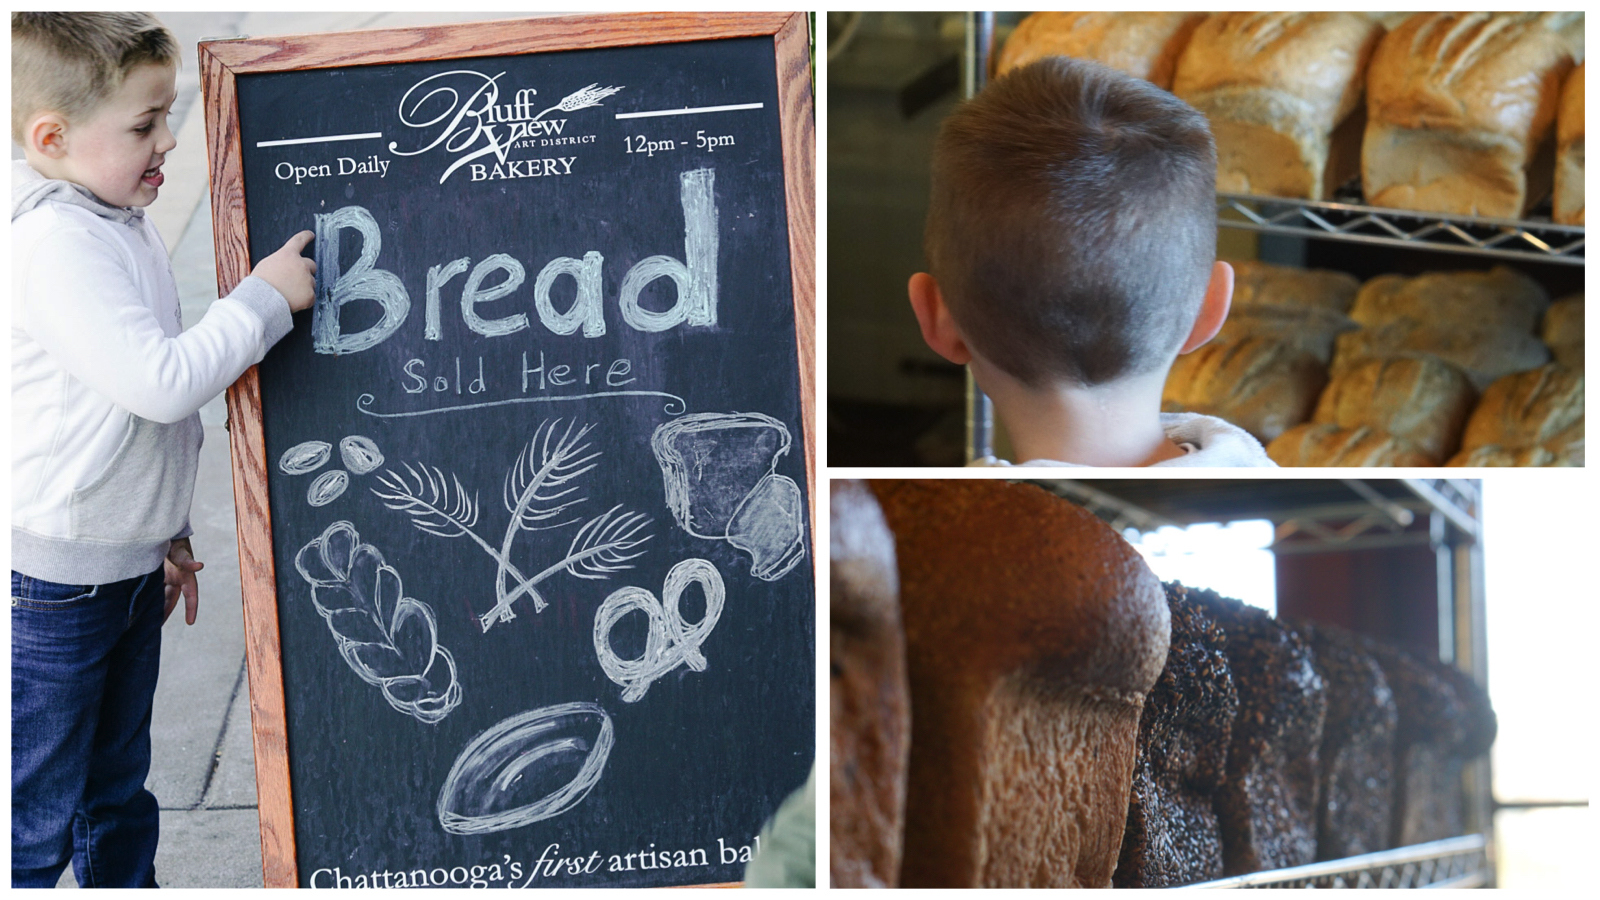 Chattanooga Tennessee Things to Do - Family Travel, Vacation and Spring Break Fun via Misty Nelson Travel Blogger - Bluff View Bakery Bread Shop